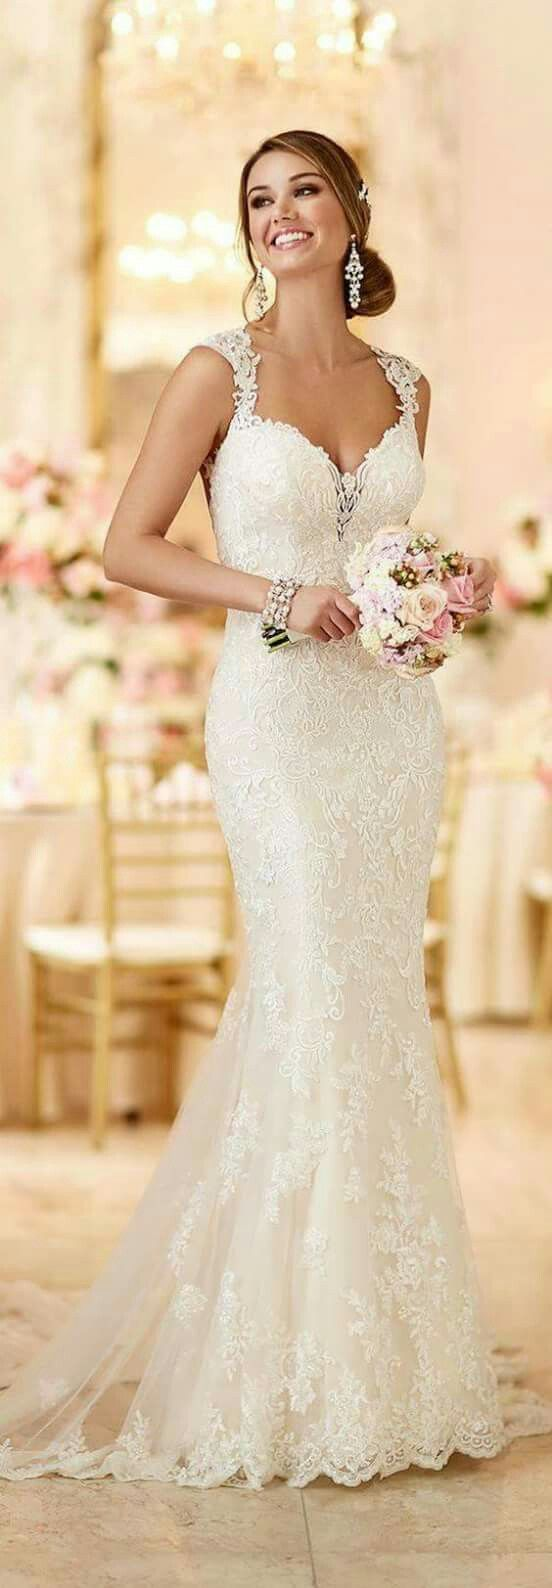 White and blue wedding dresses  Pin by Simona Rasquinha on Lace wedding dresses  Pinterest